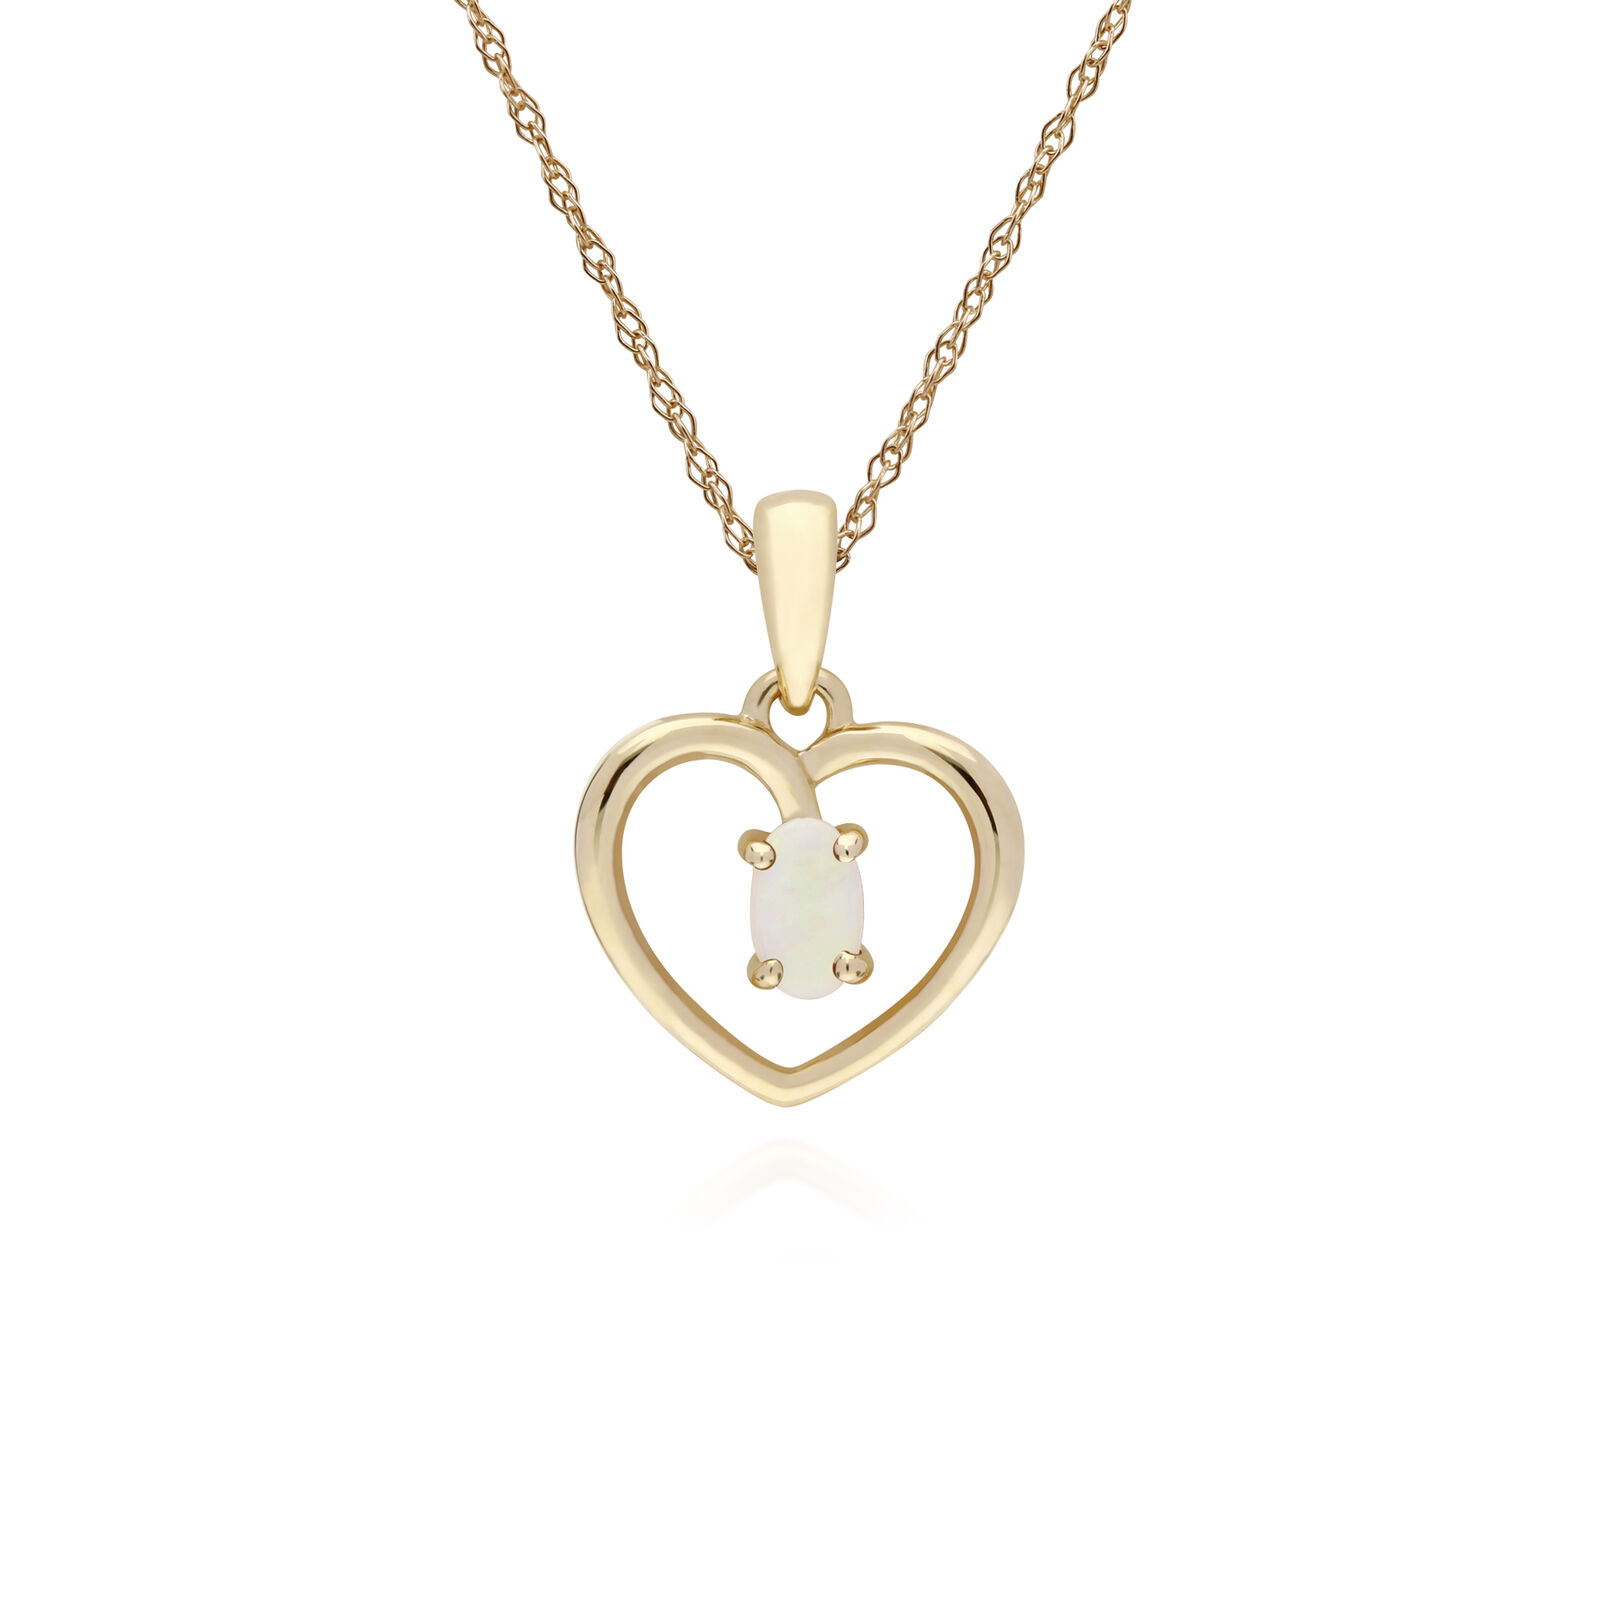 Gemondo 9ct Yellow gold Opal Oval Single Stone Heart Pendant on 45cm Chain